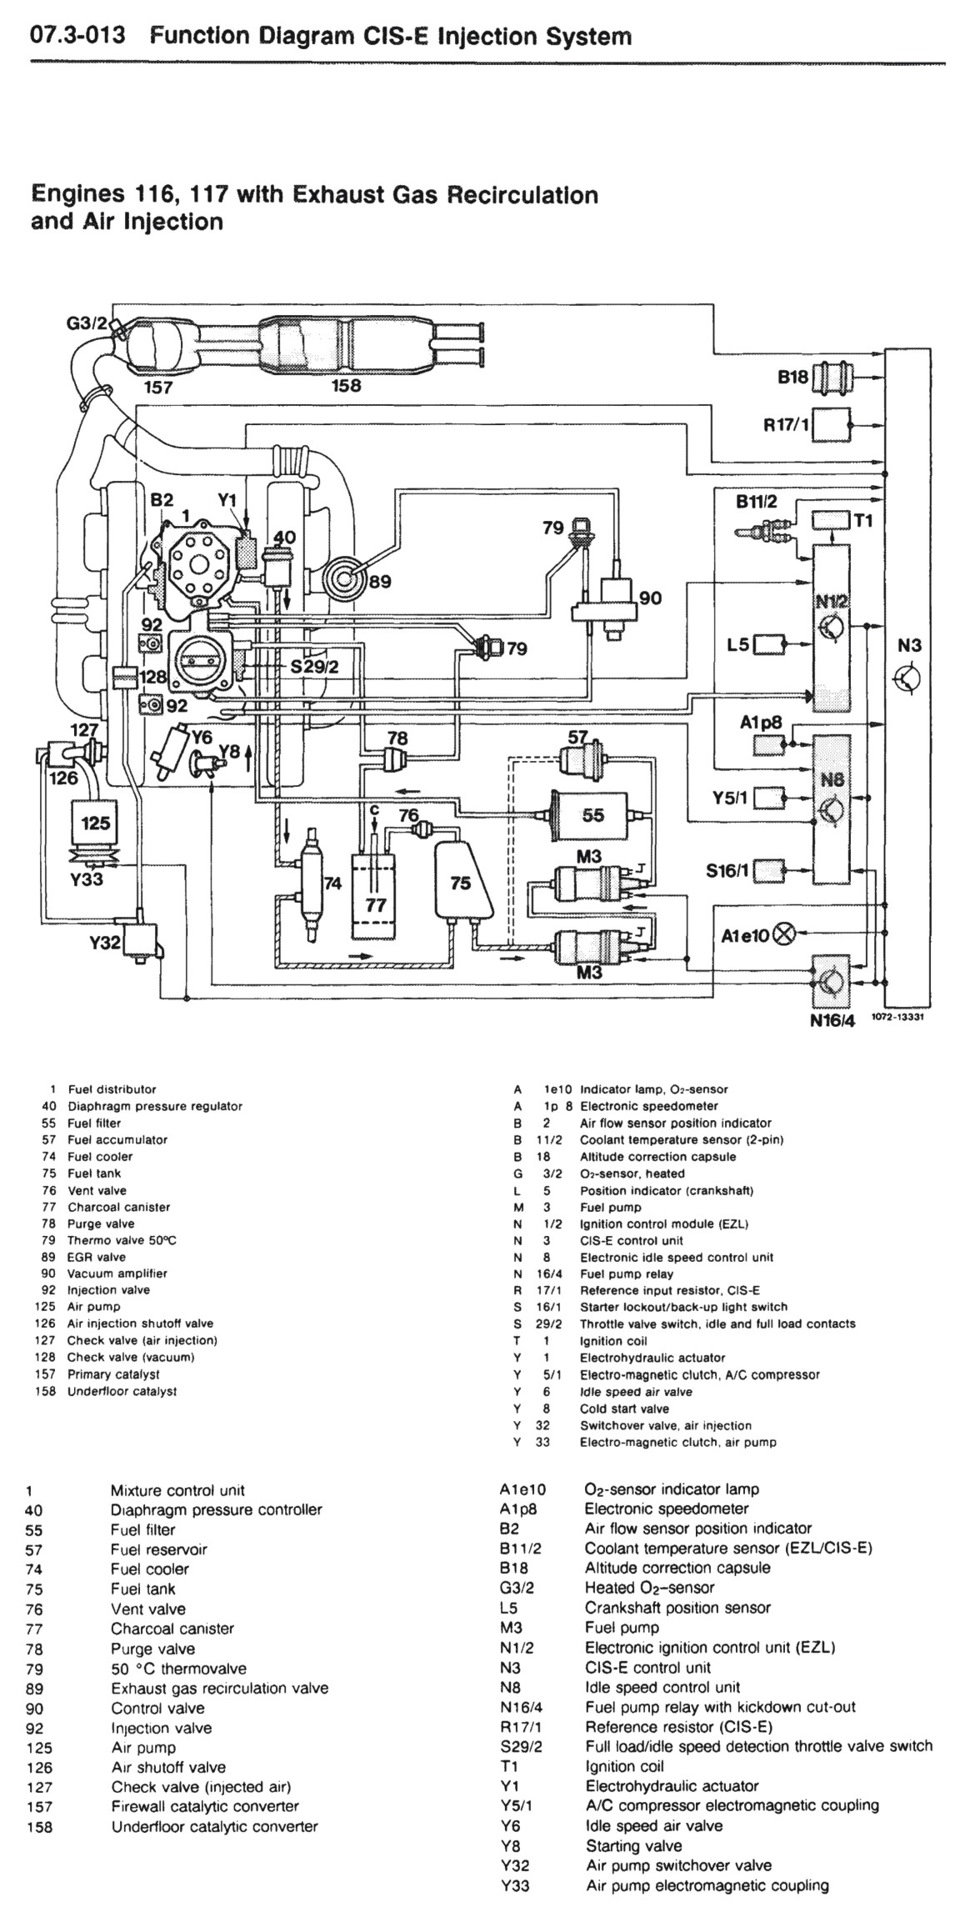 Waterpump Xk moreover Jeep Grand Cherokee Fuse Diagram    carimagescolay Pertaining To Jeep Wrangler Fuse Box Diagram moreover A moreover Ironfist together with Zzzzz. on 2000 jaguar xj8 fuse box diagram